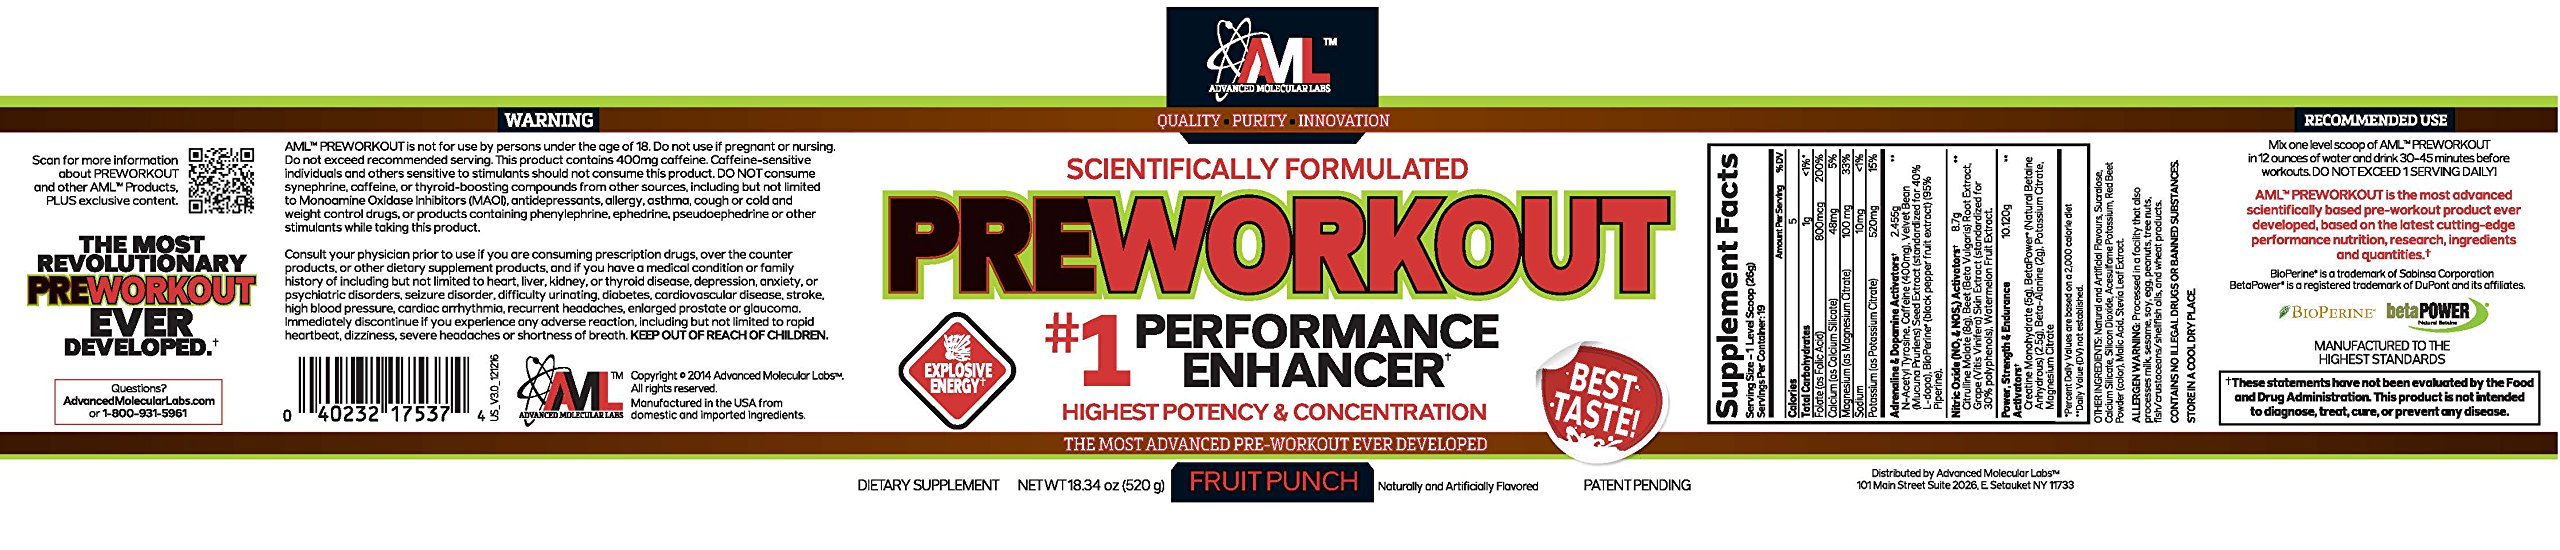 Advanced Molecular Labs Preworkout Stack, Fruit Punch Powder 18.34oz 520 Grams & Power Rep 60 Caps , with 8g Citrulline Malate, 5g Creatine - WITH FREE BLENDER BOTTLE & 2 TRAVEL SAMPLES by Advanced Molecular Labs (Image #1)